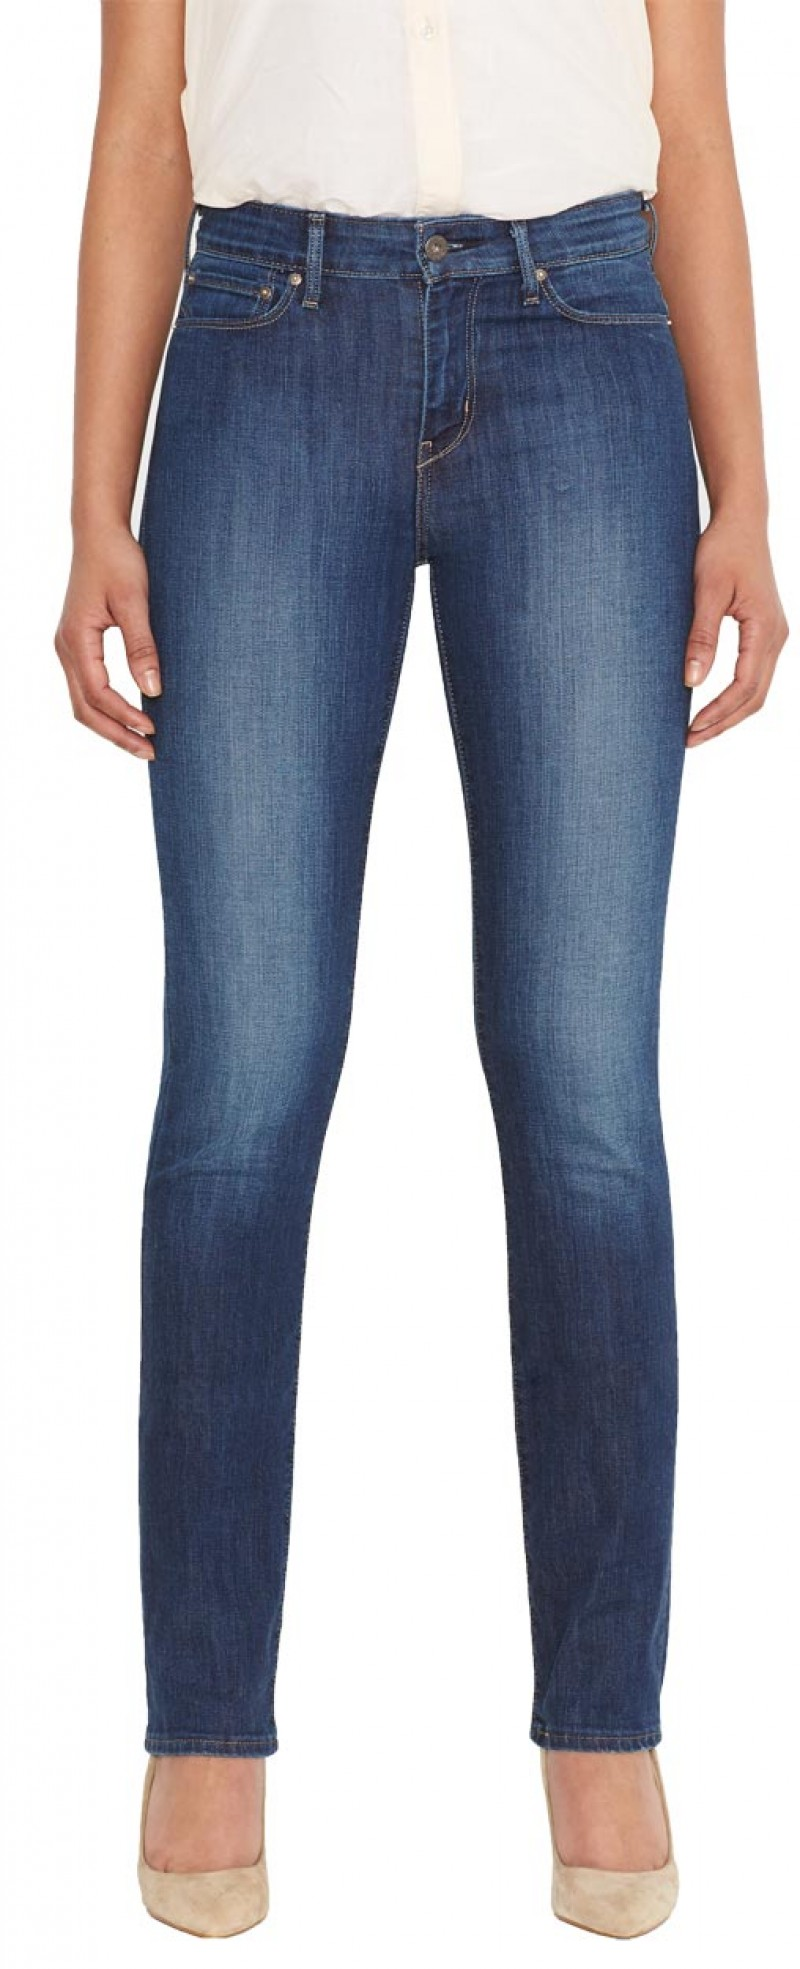 Levis Demi Curve - Straight Jeans - Justice v